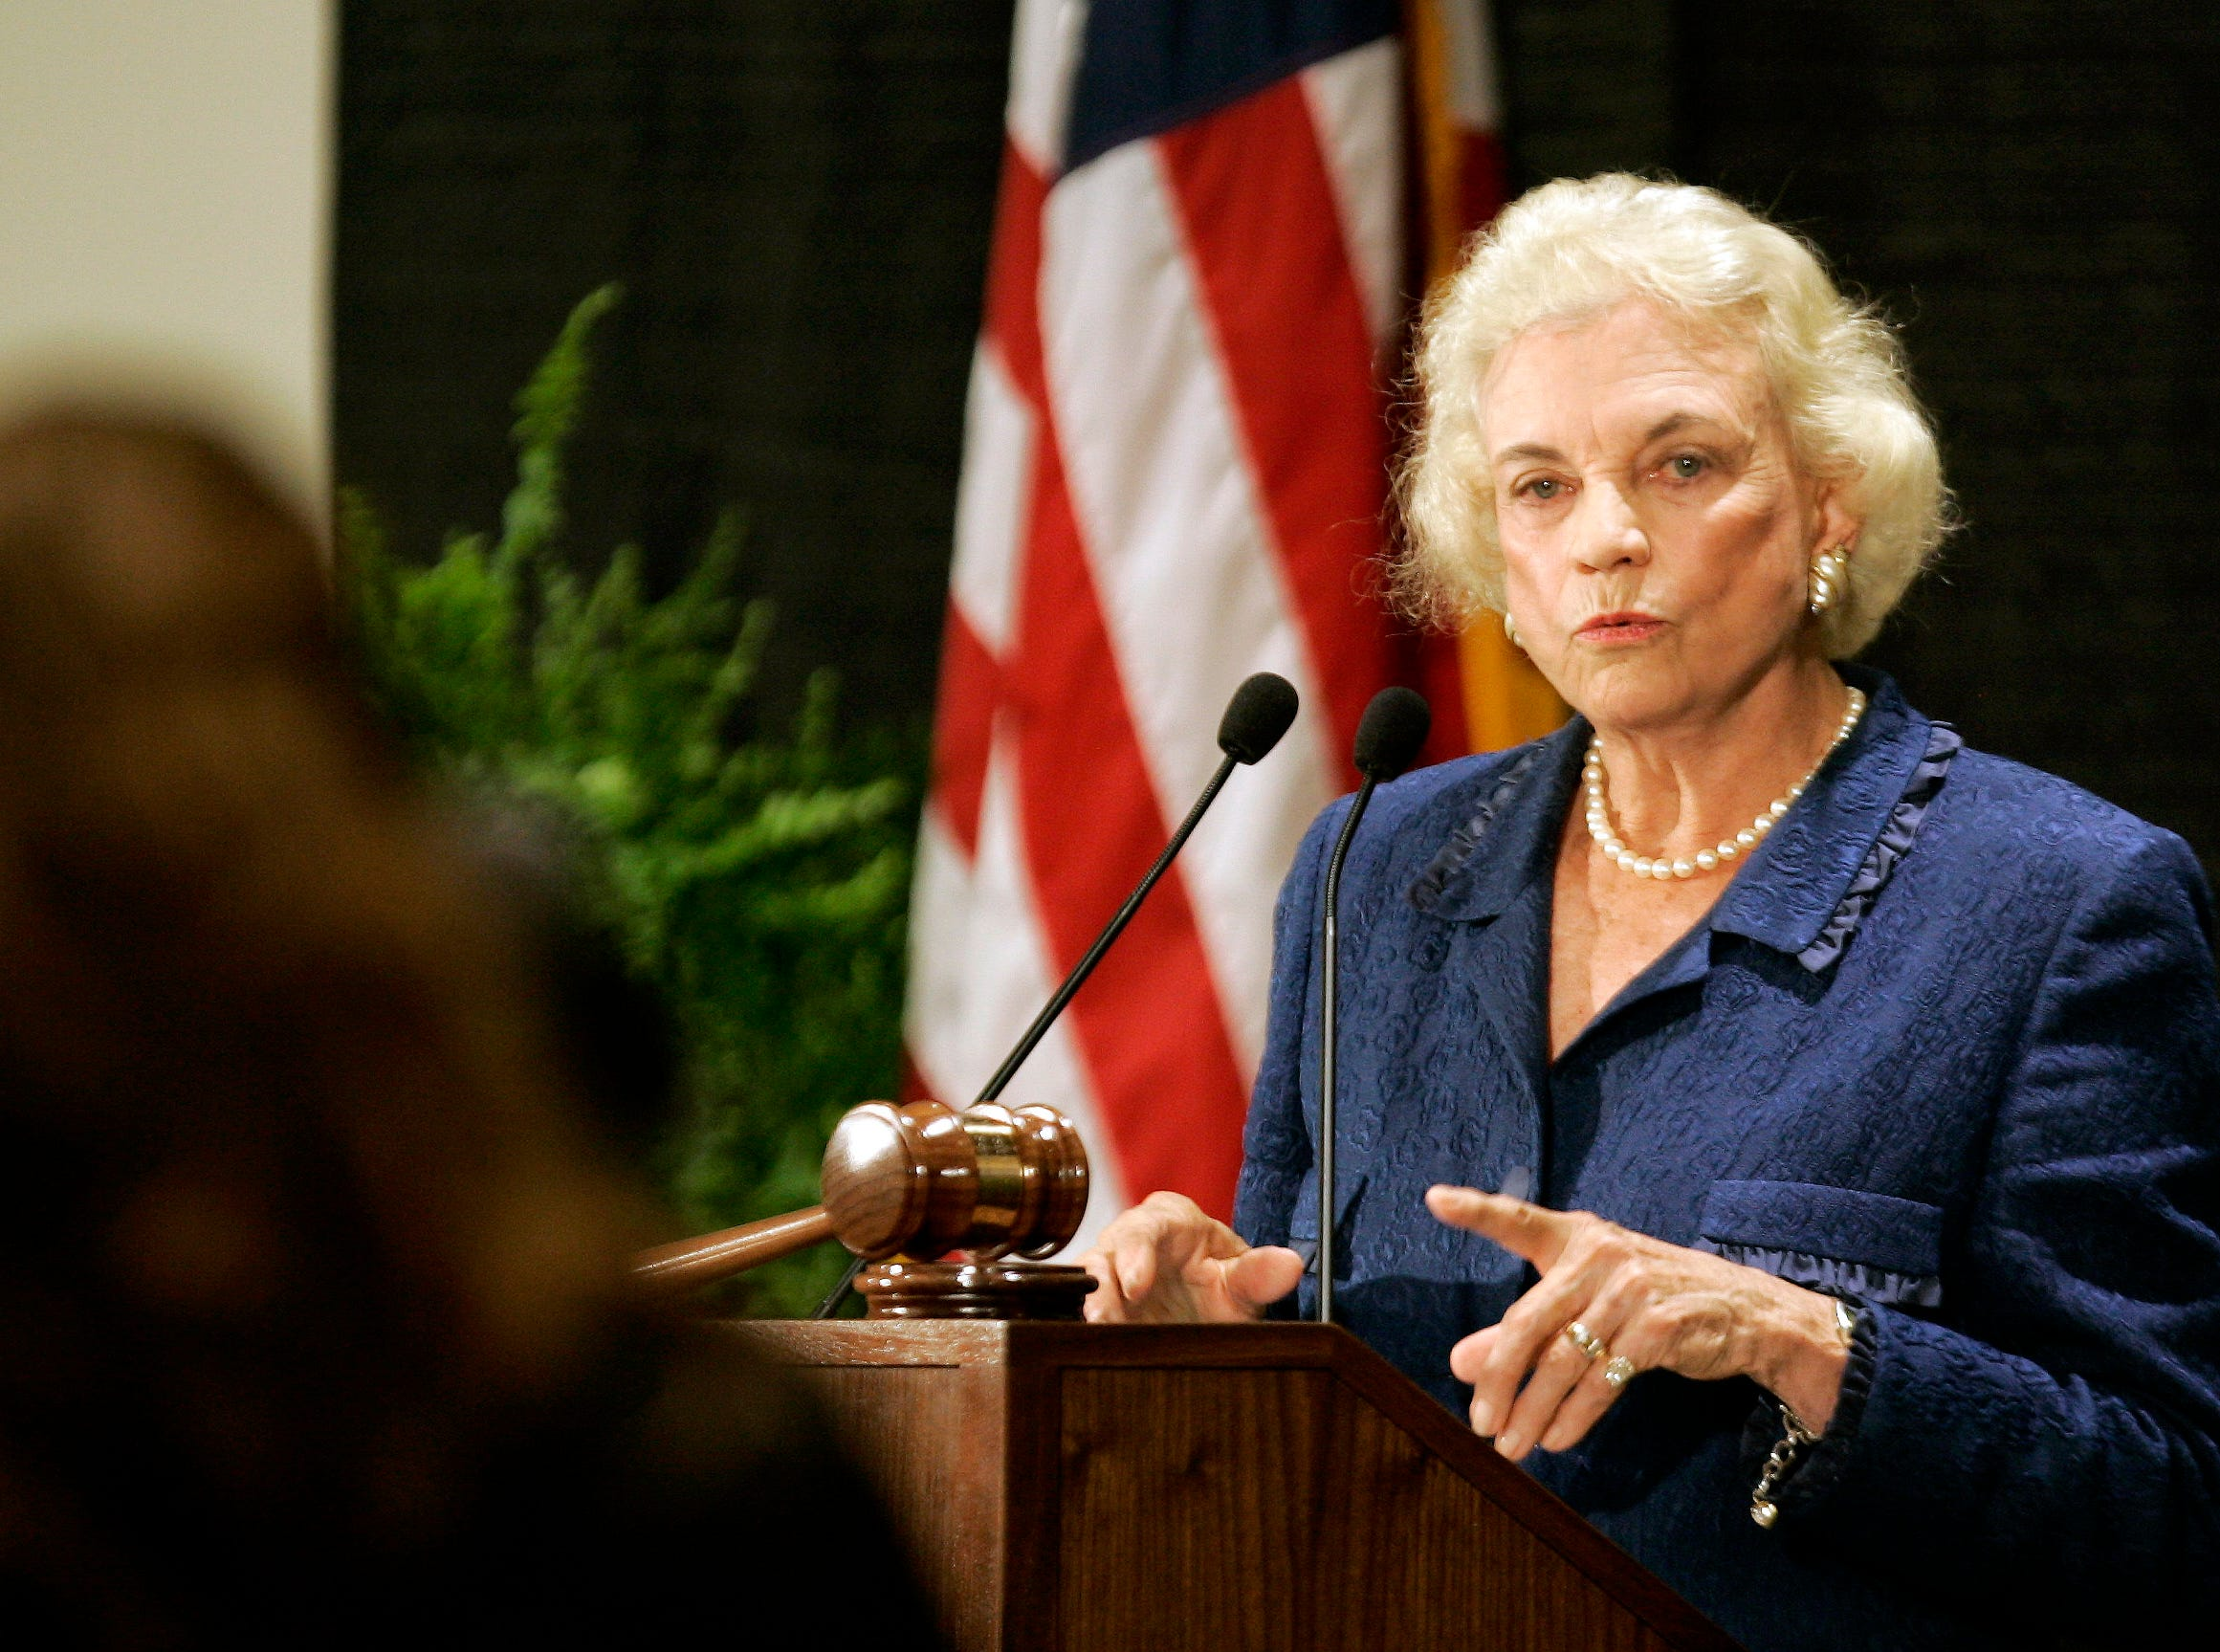 Retired U.S. Supreme Court Justice Sandra Day O'Connor answers questions from a student at Elon University School of Law in Greensboro, N.C., Tuesday, Sept. 19, 2006. O'Connor helped dedicate the new law school and took questions from students.